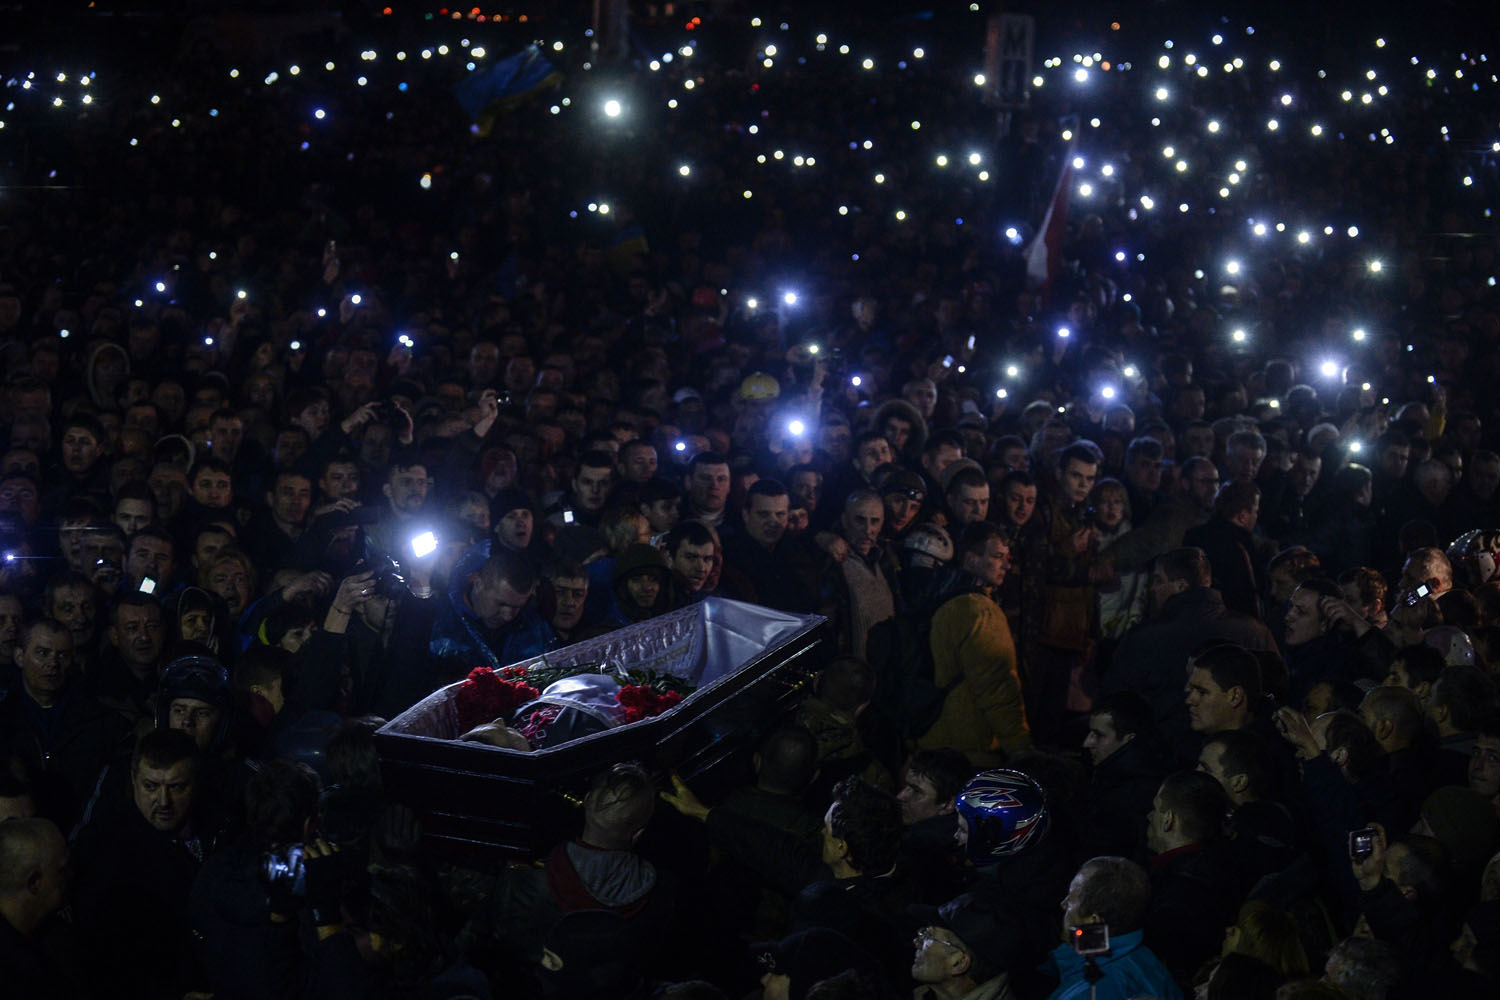 People carry a coffin of a man who was killed during recent clashes, as they gather at Independence Square on Feb. 22, 2014.